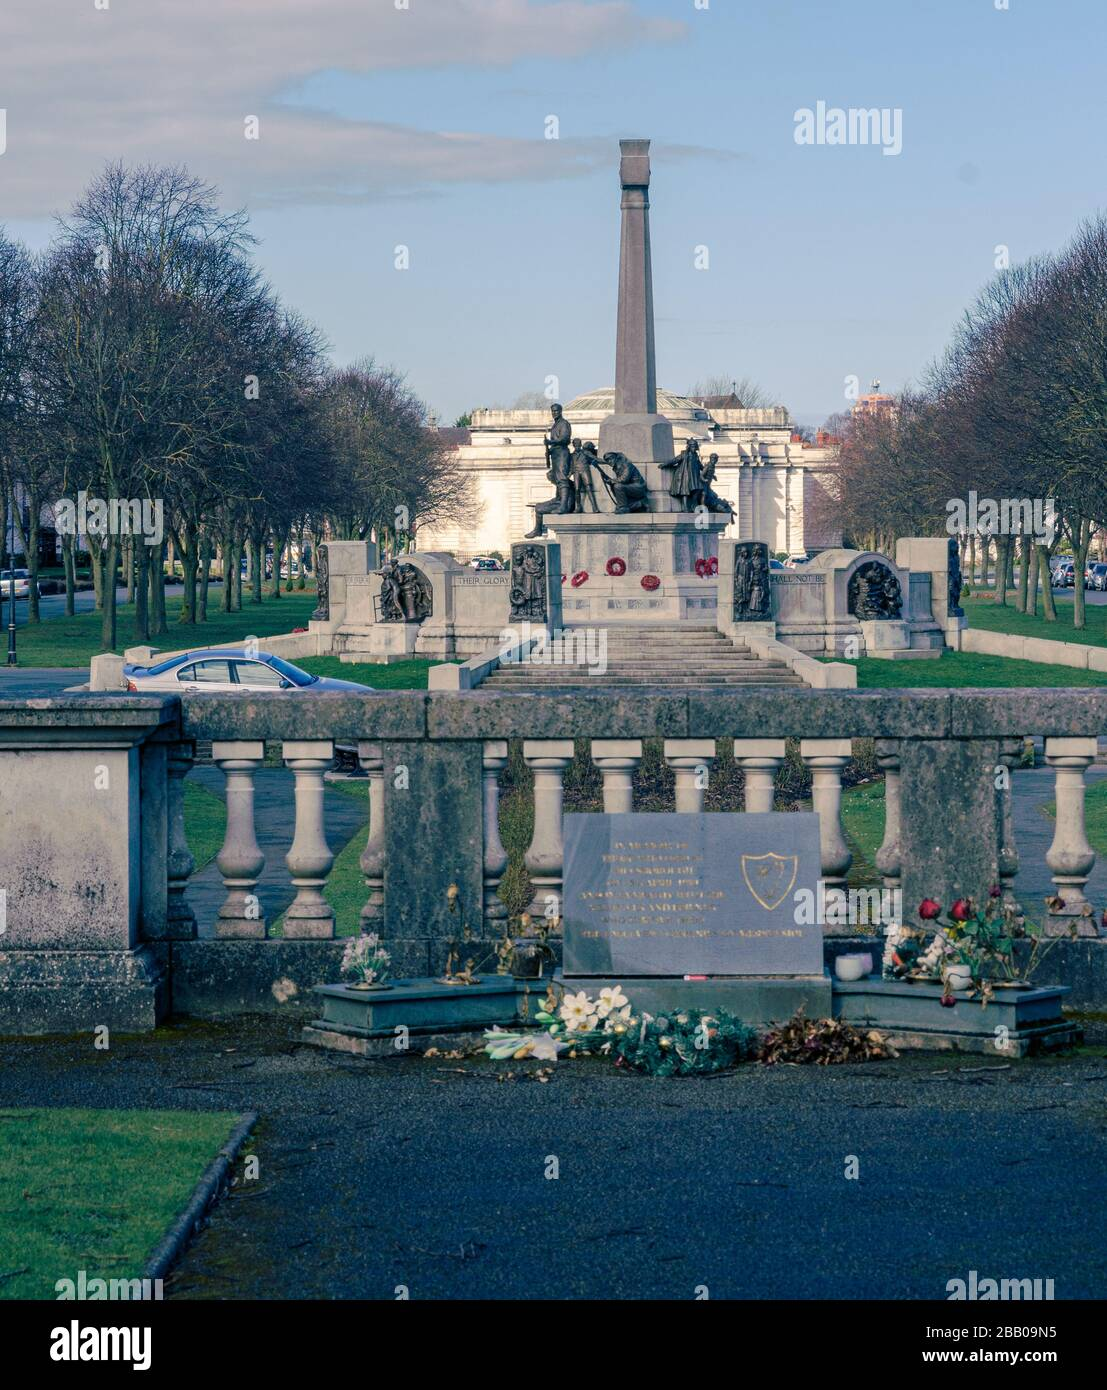 Port Sunlight Hillsborough disaster Memorial Garden to 96 football supporters, with village war memorial and Lady Lever Art Gallery in the background. Stock Photo